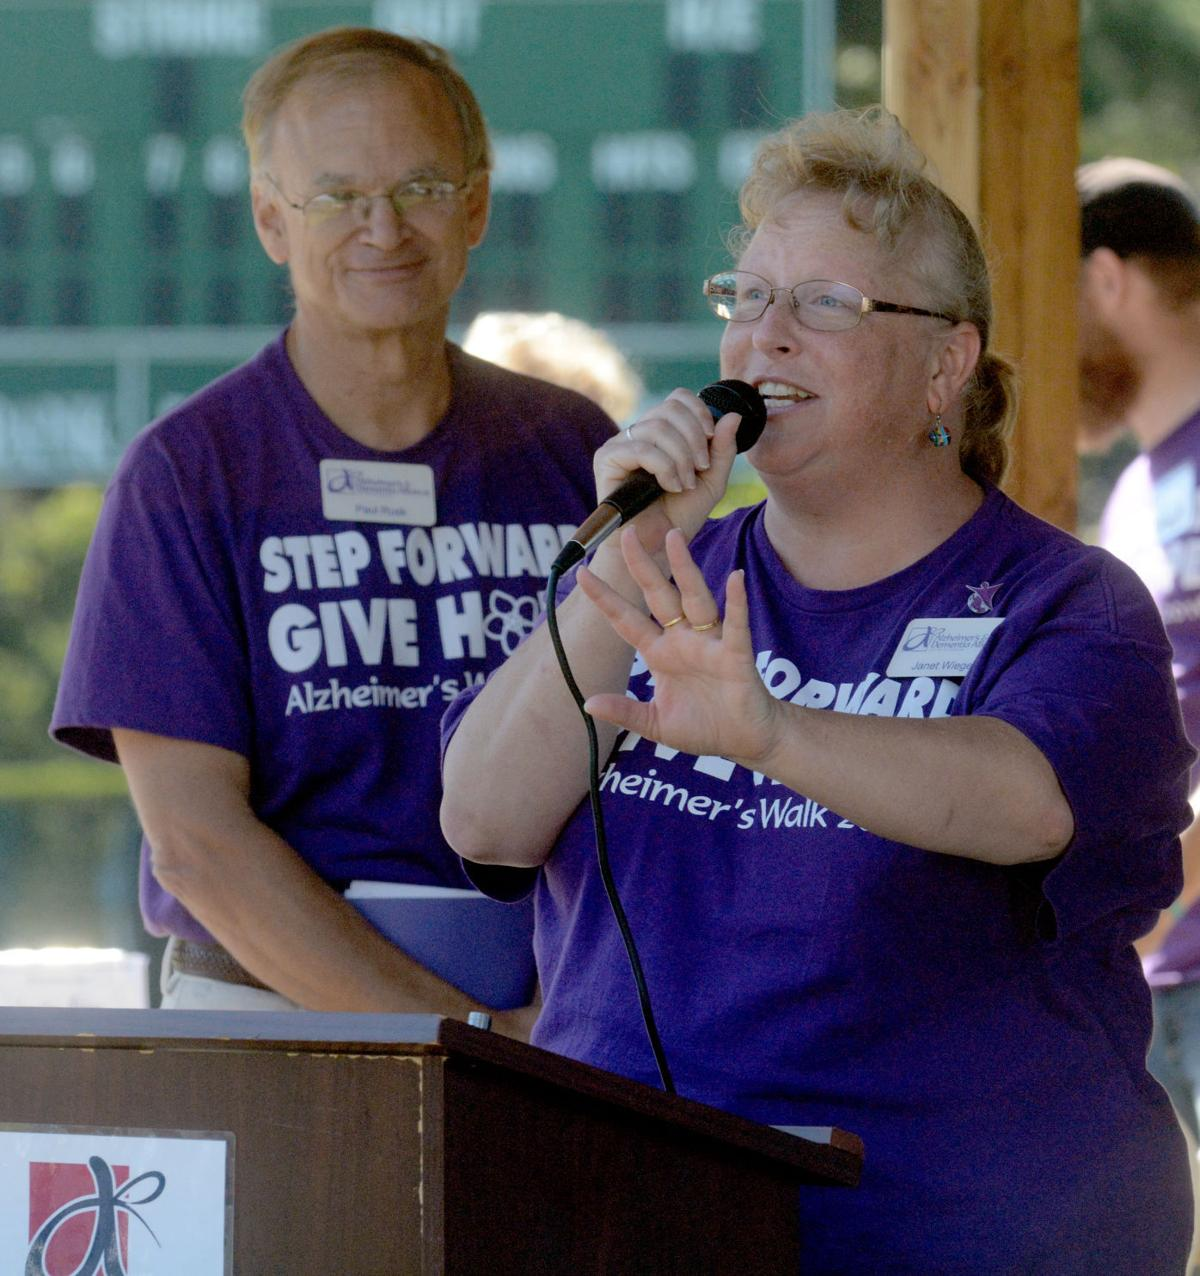 Alzheimer's advocates have high hopes for future